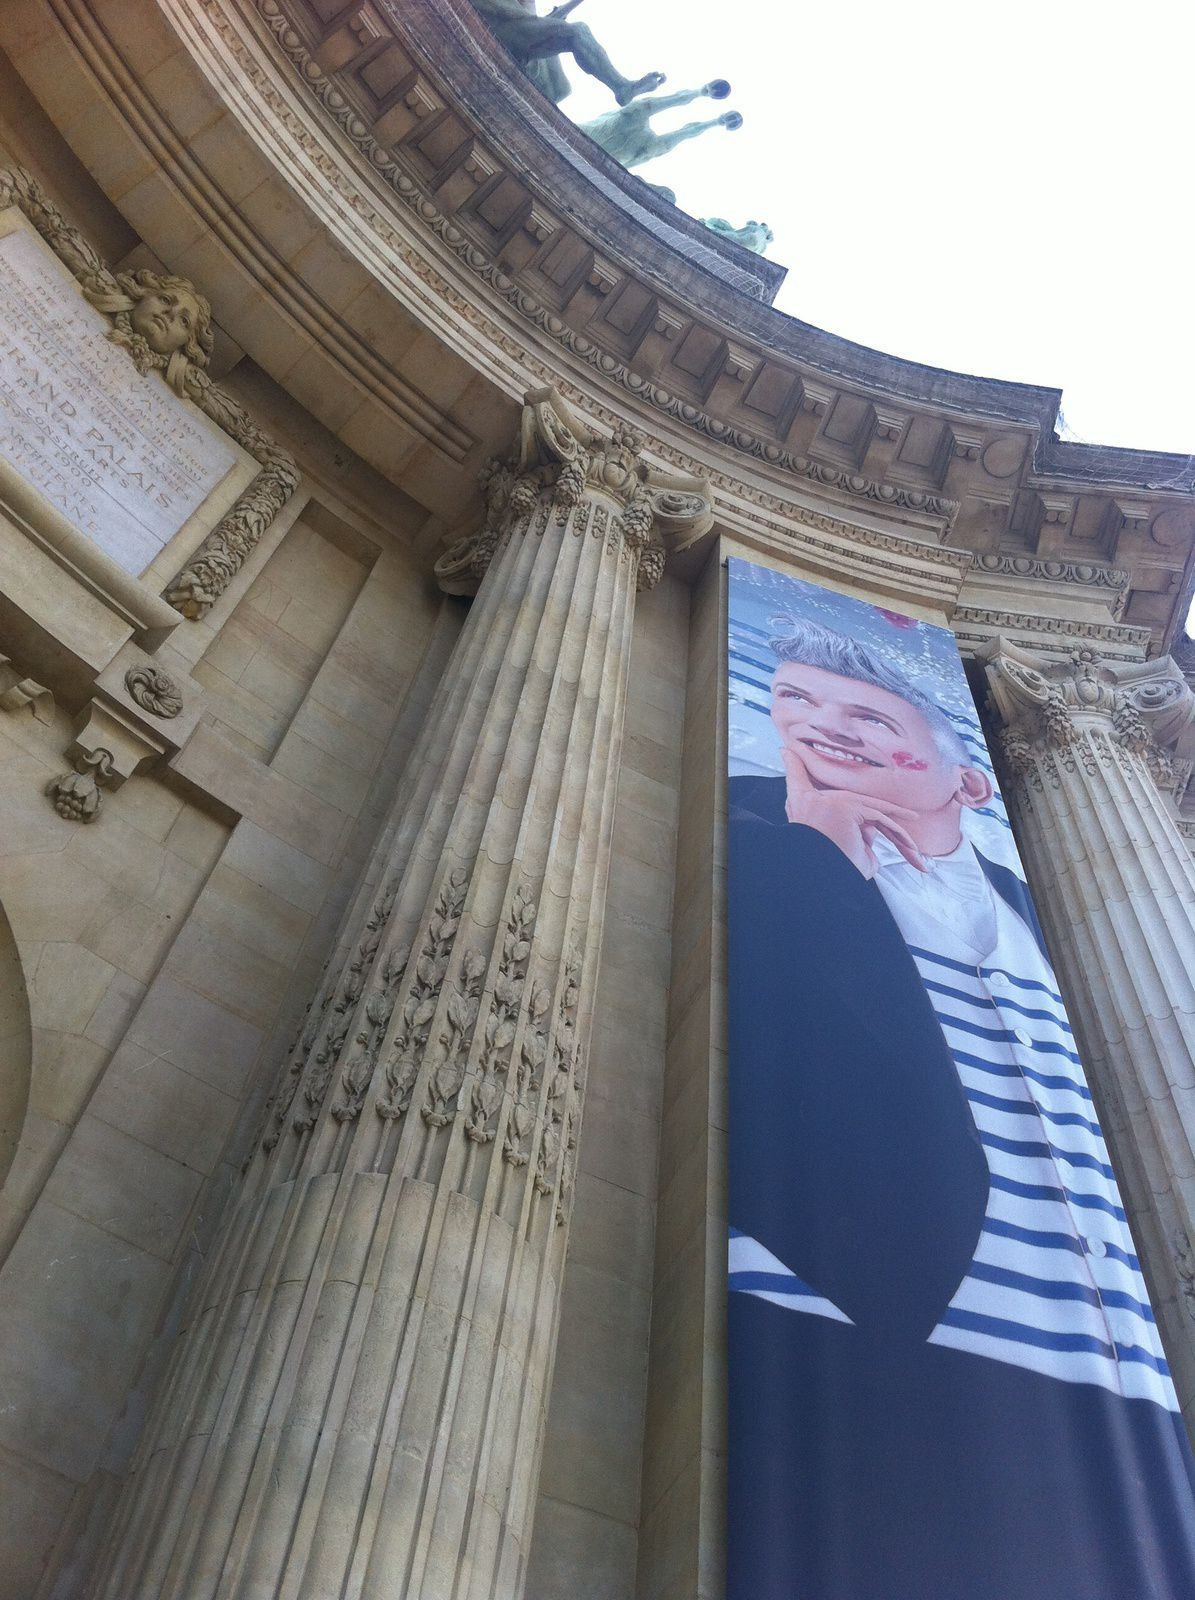 Jean Paul Gaultier au grand palais-paris.